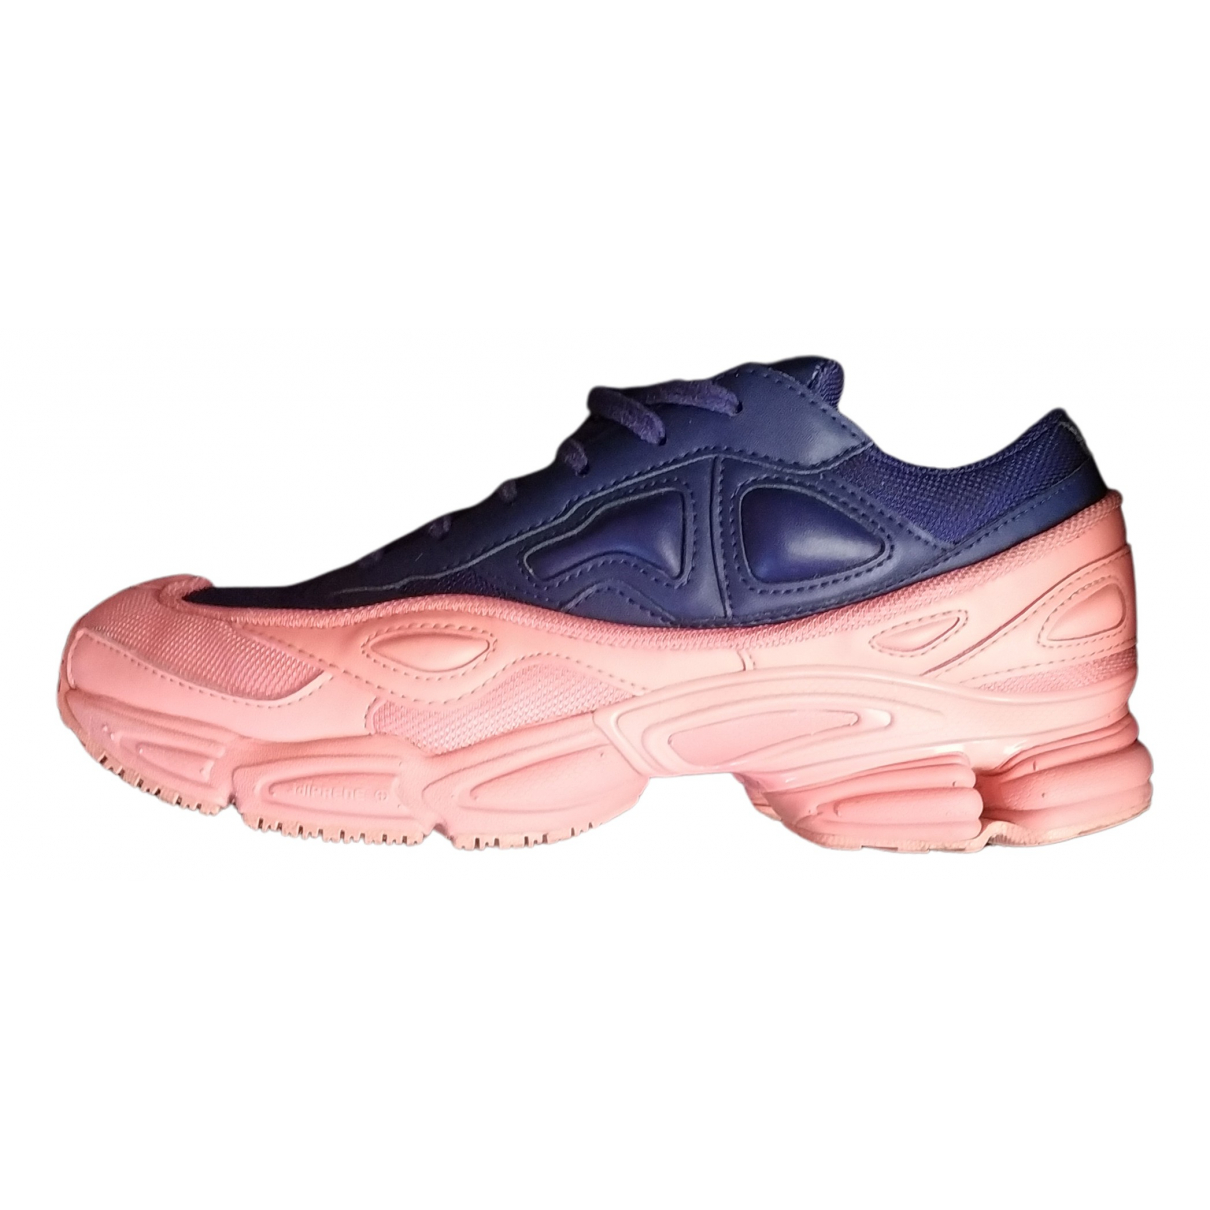 Adidas X Raf Simons Ozweego 2 Blue Leather Trainers for Women 7 UK